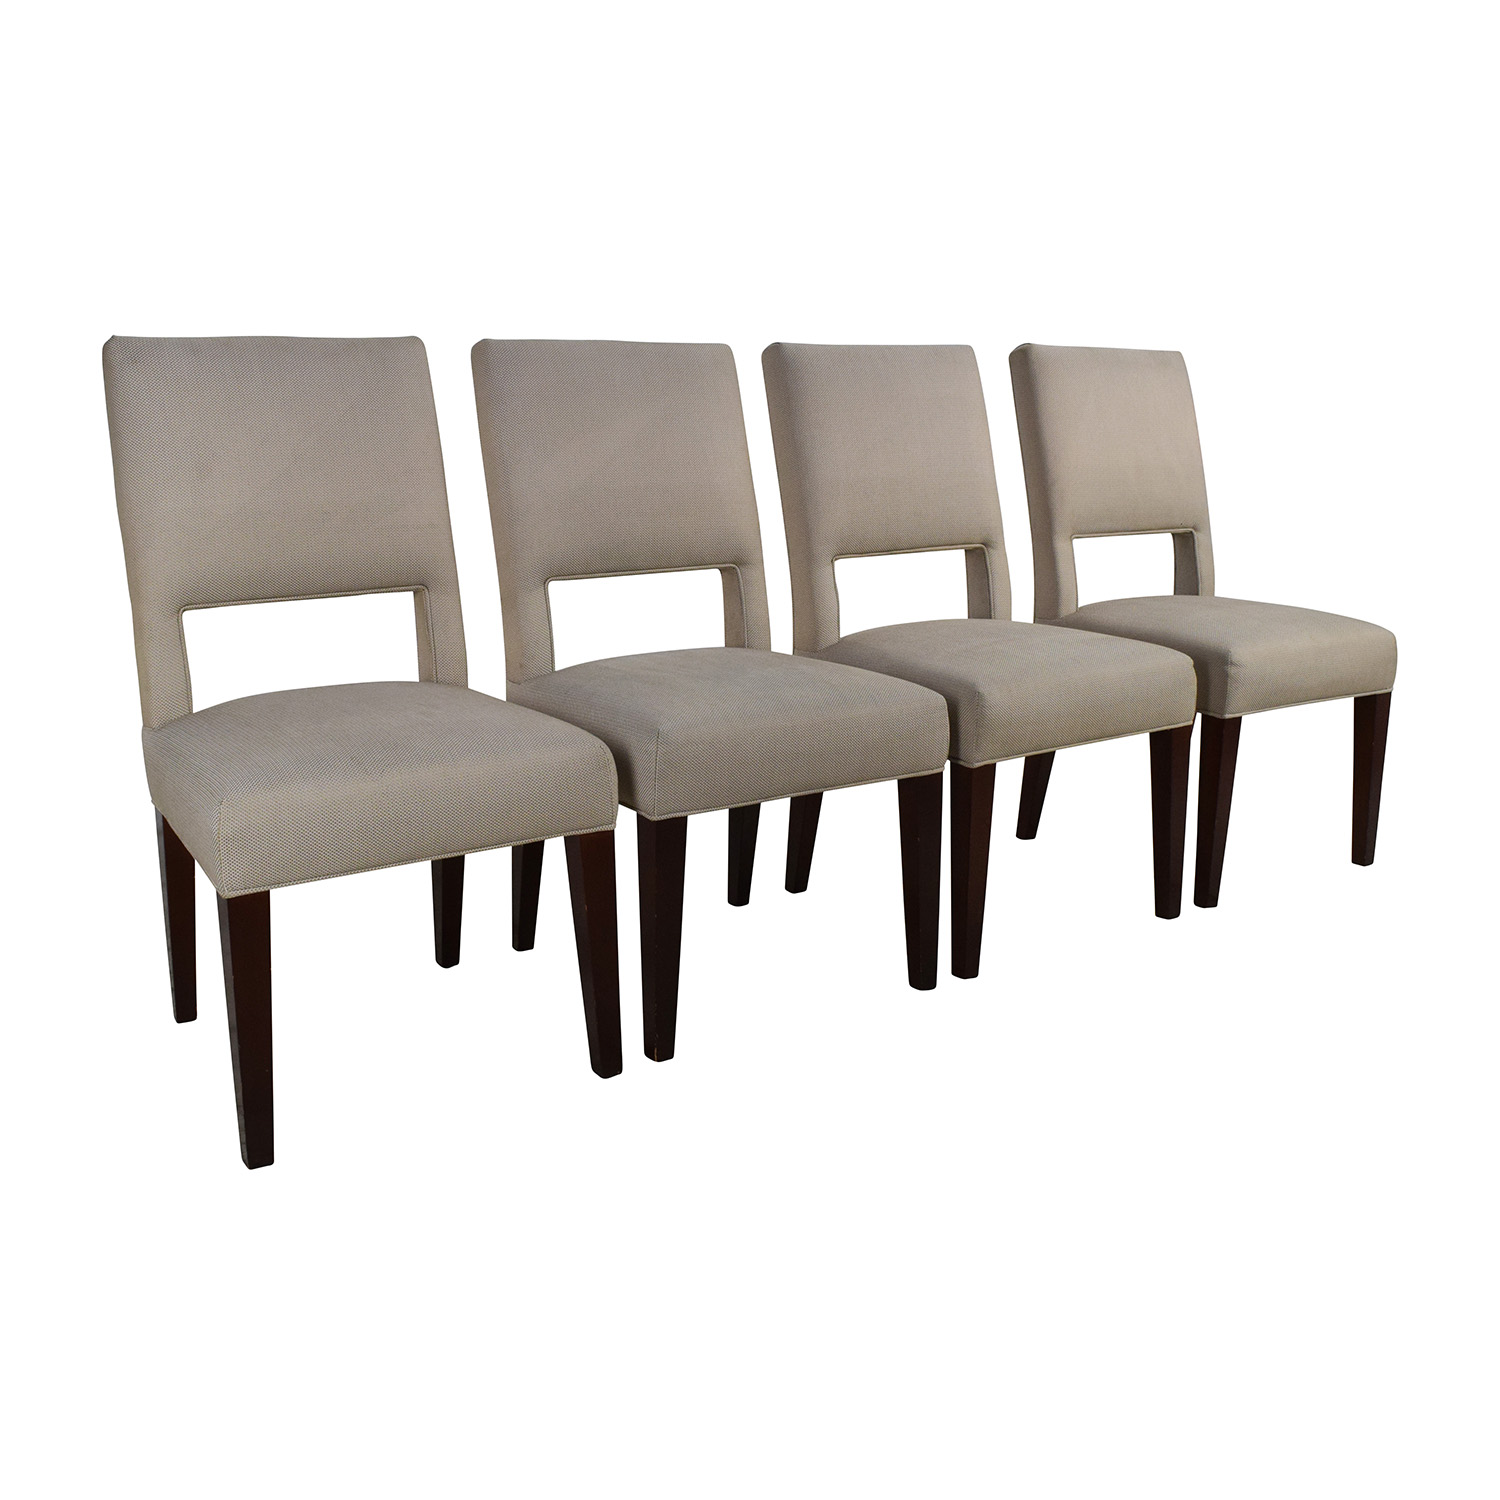 87% OFF Set of 4 Custom Dining Chairs Chairs